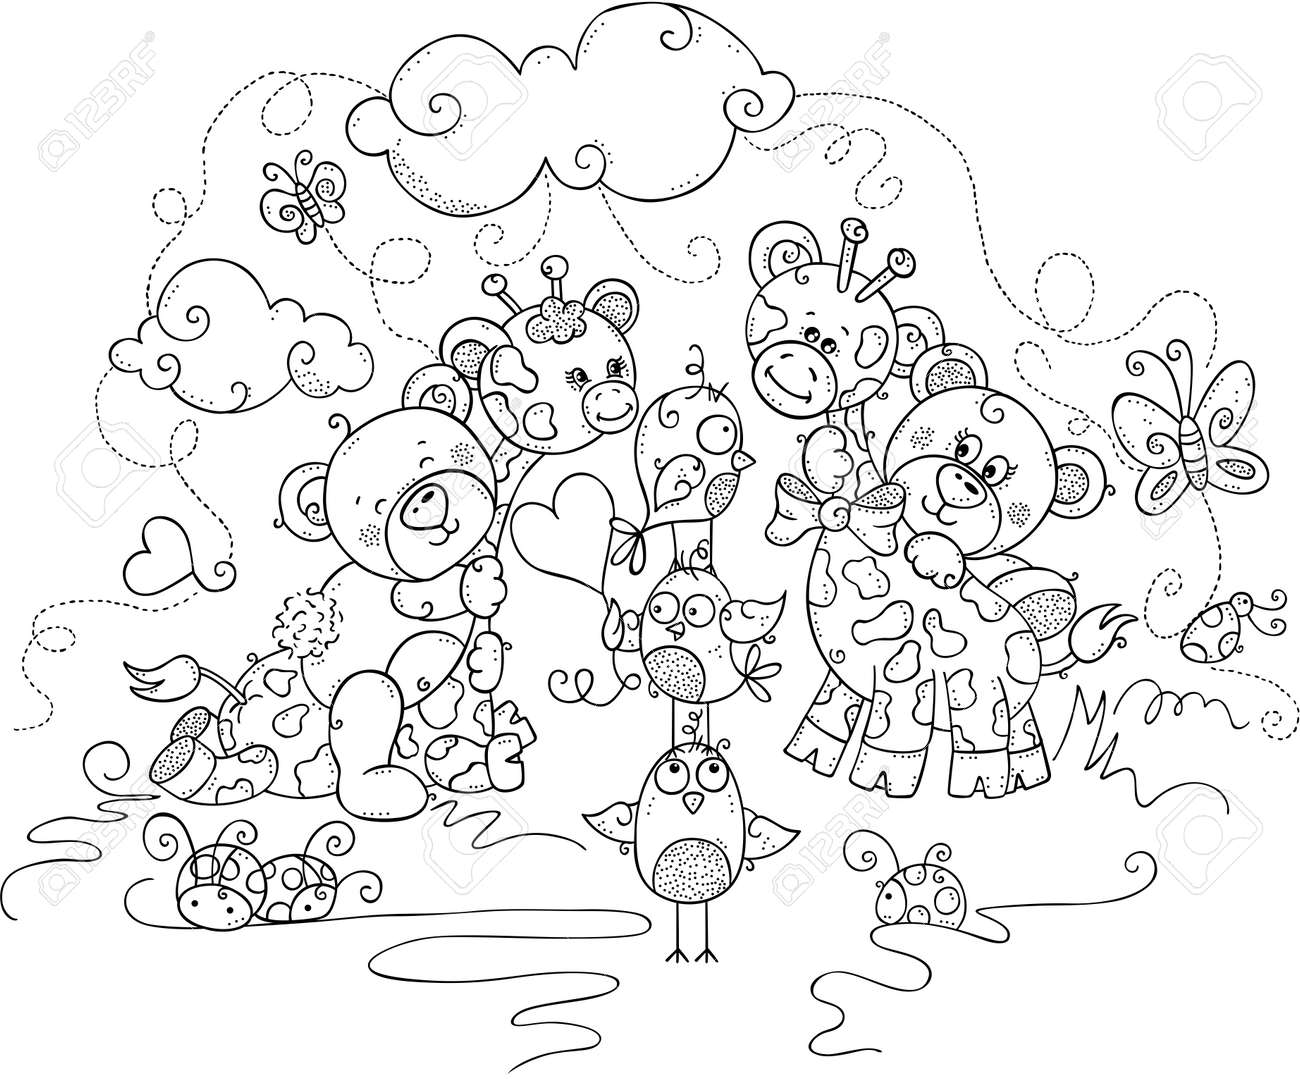 Free Printable Teddy Bear Coloring Pages For Kids | 1078x1300